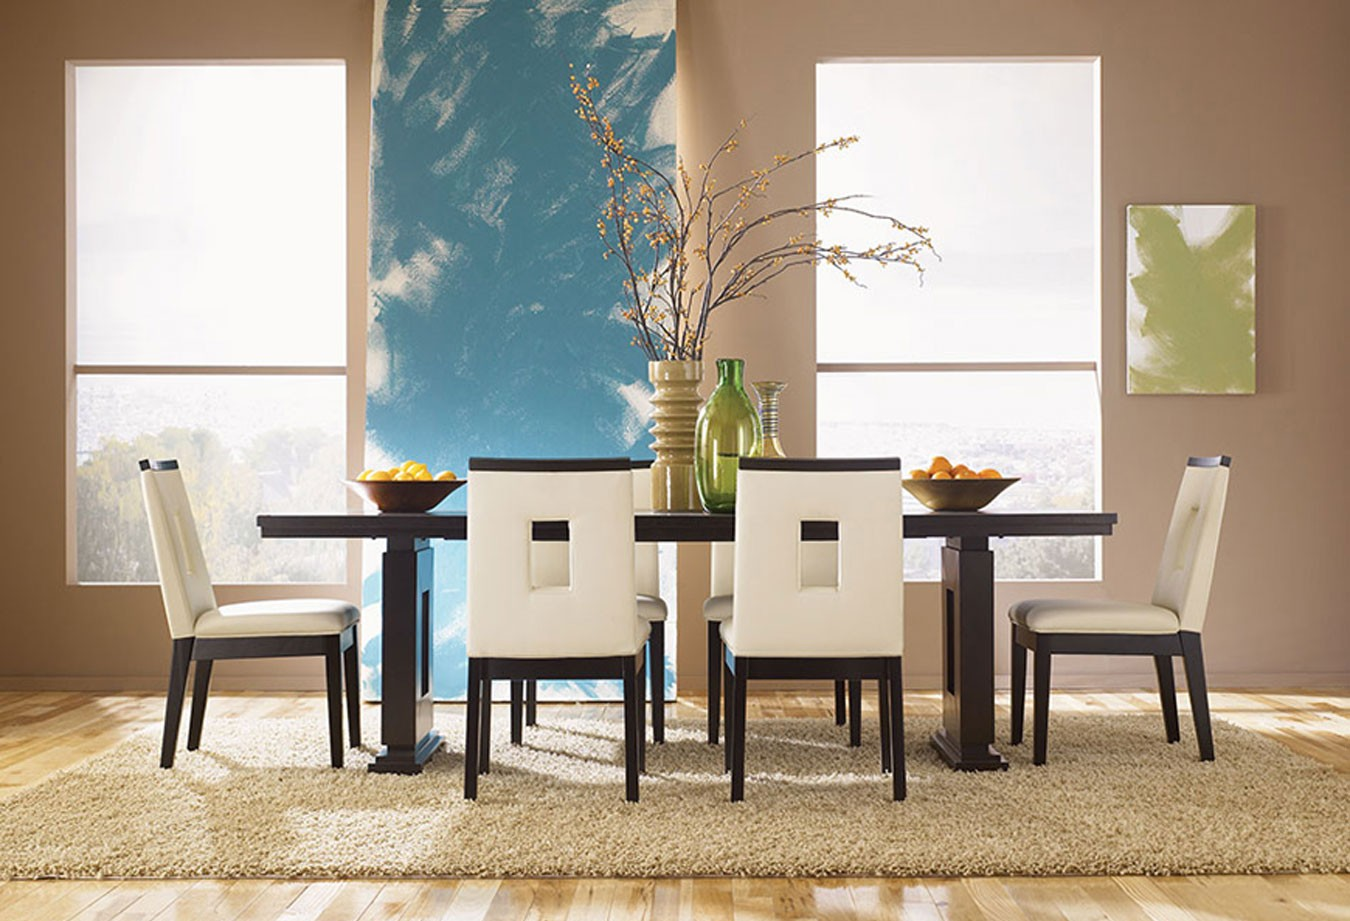 Top 10 dining room trends for 2016 - Latest dining room trends to follow ...